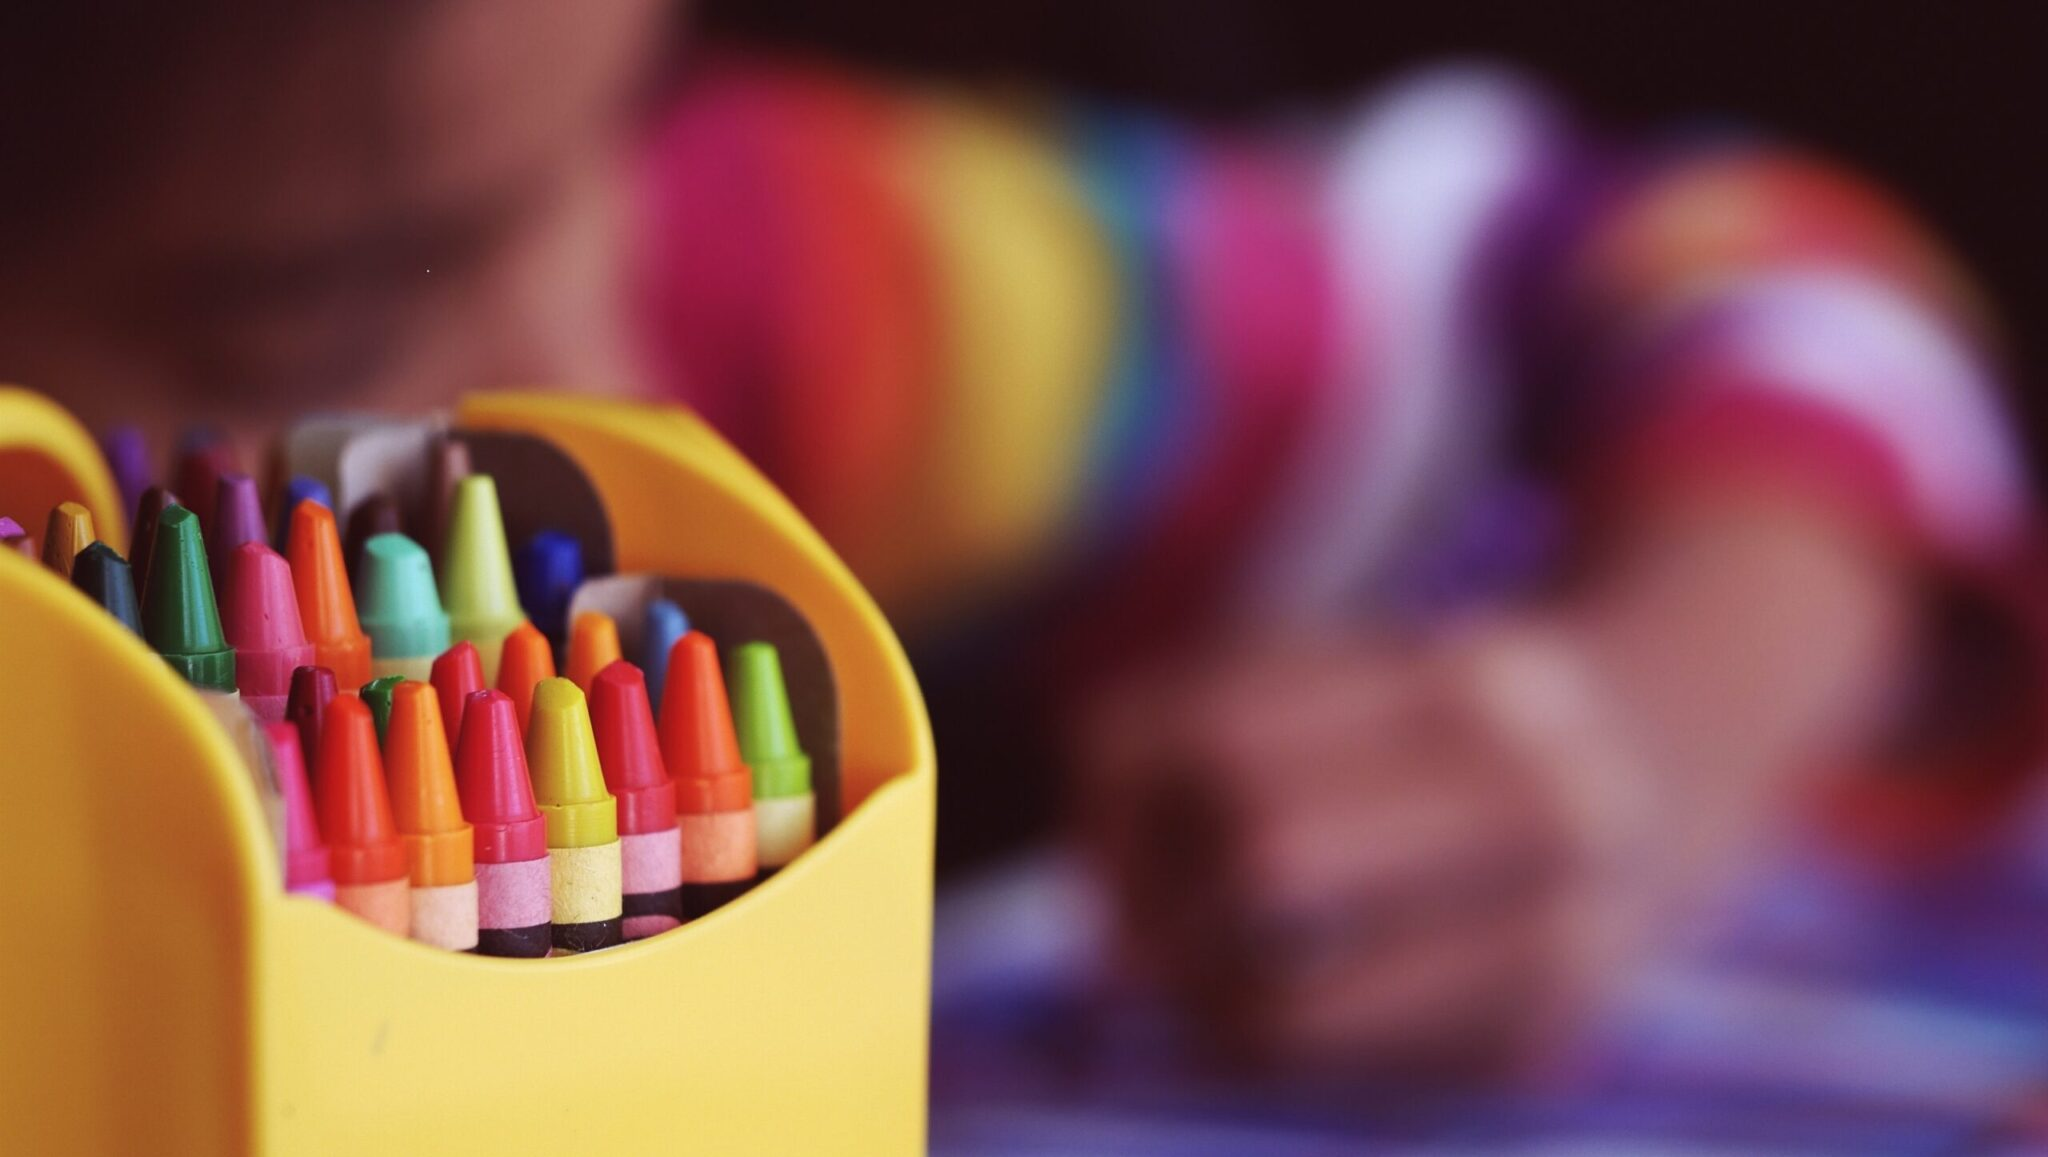 Jon Gardner Voice-Overs, coloring outside the lines, crayons, risk taking